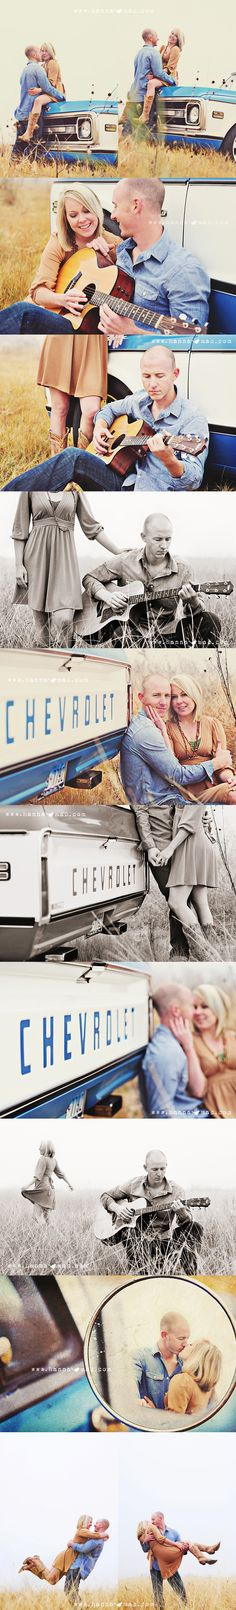 Cute engagement photos.. idk what to use instead of a guitar and it would be a ford instead of chevy